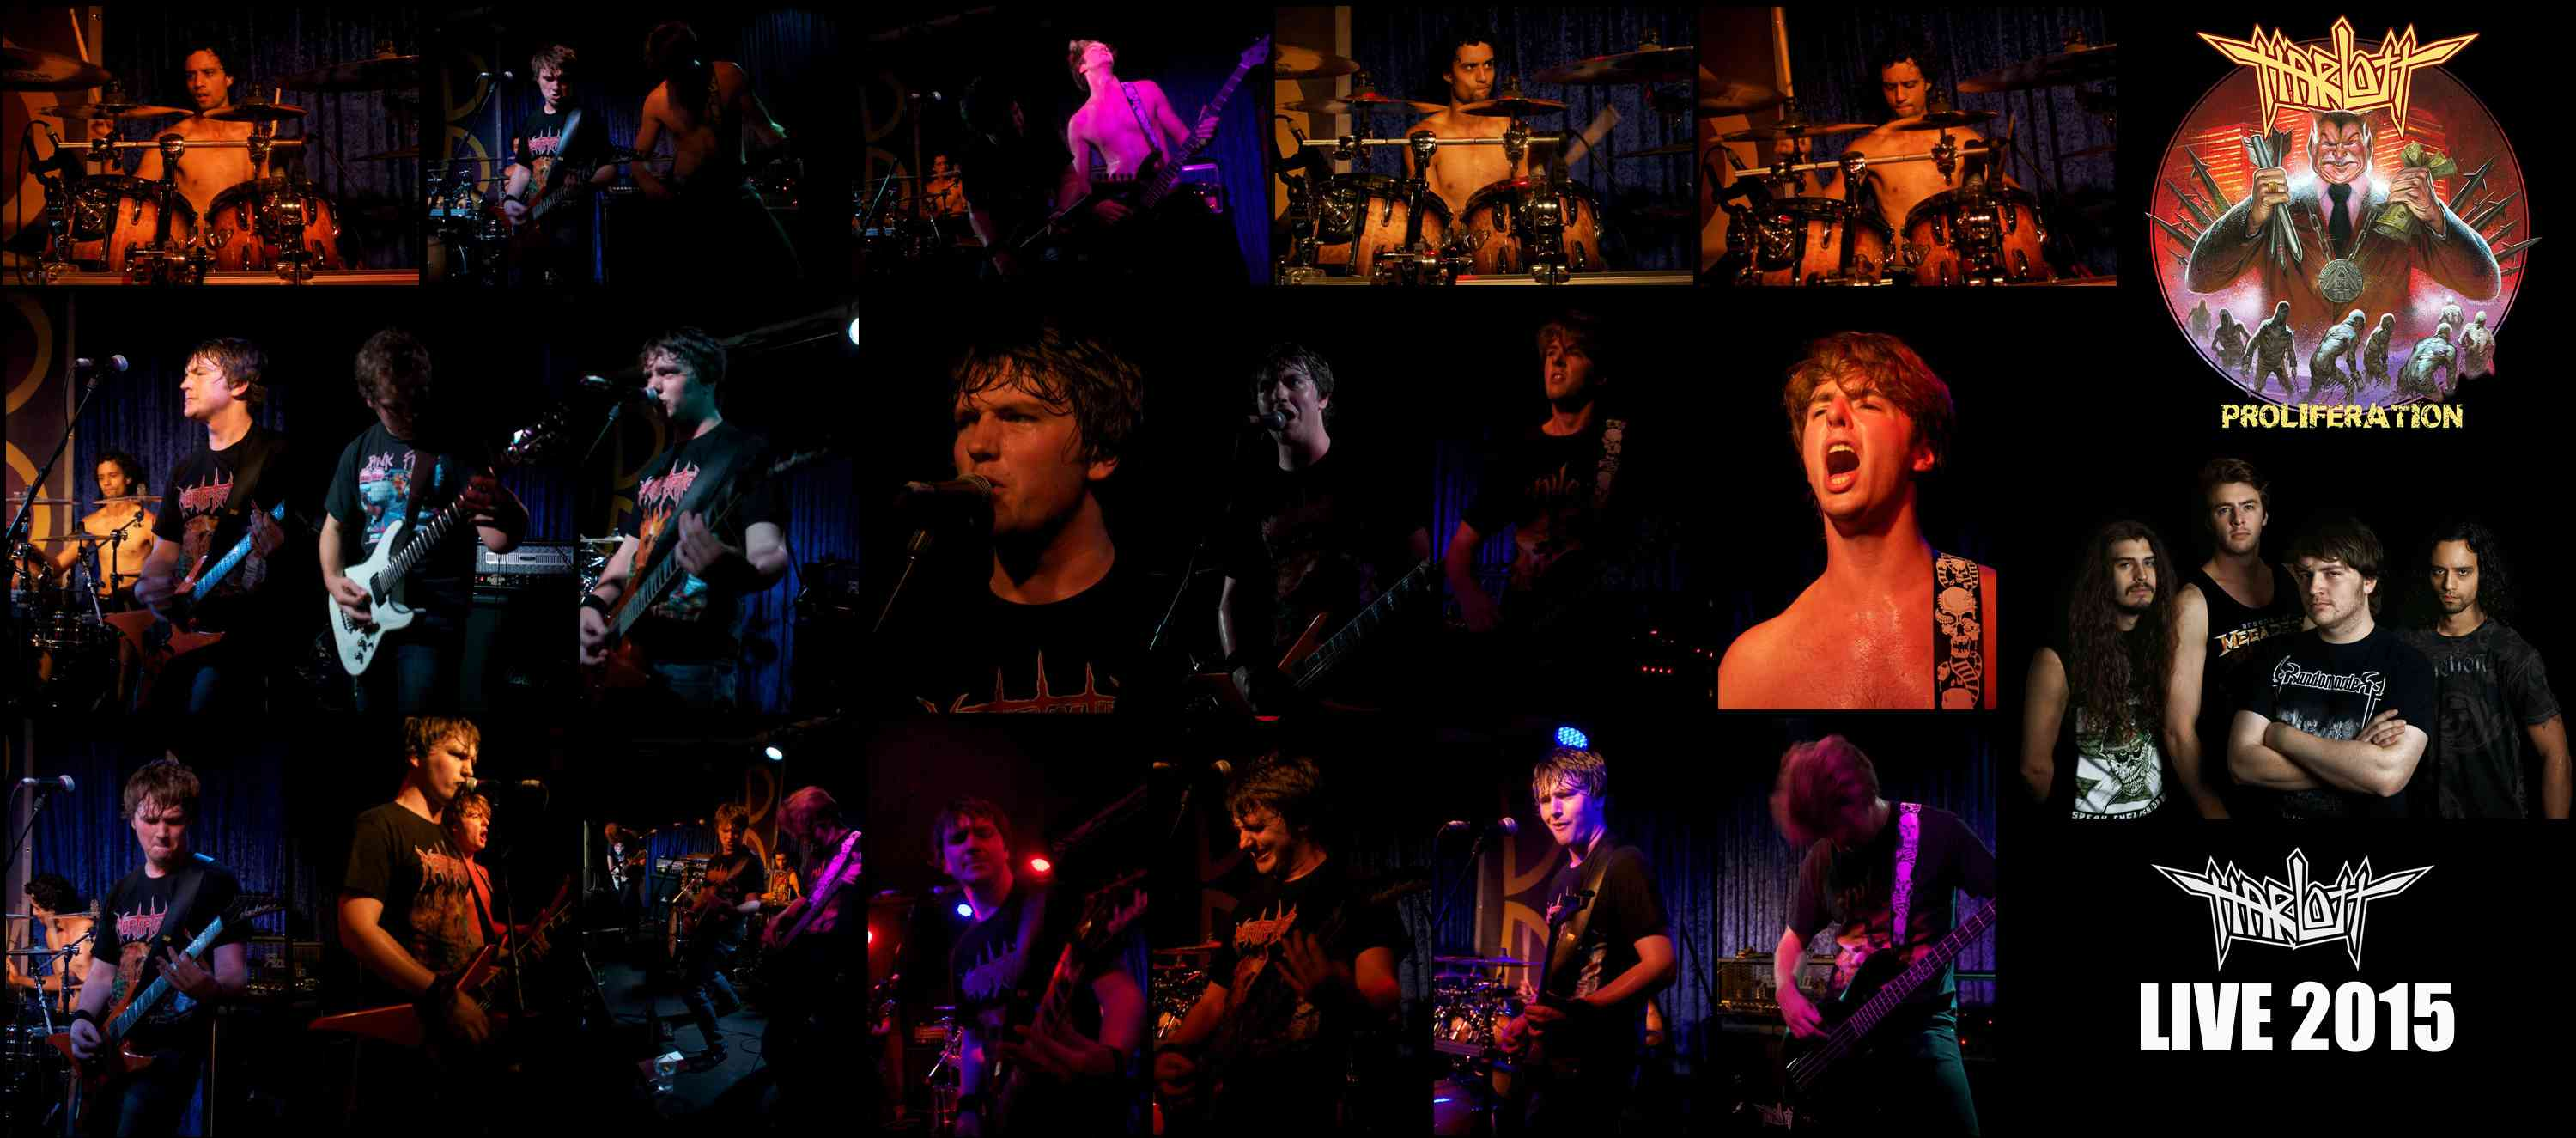 Mes petits montages photos ... - Page 8 Harlot10